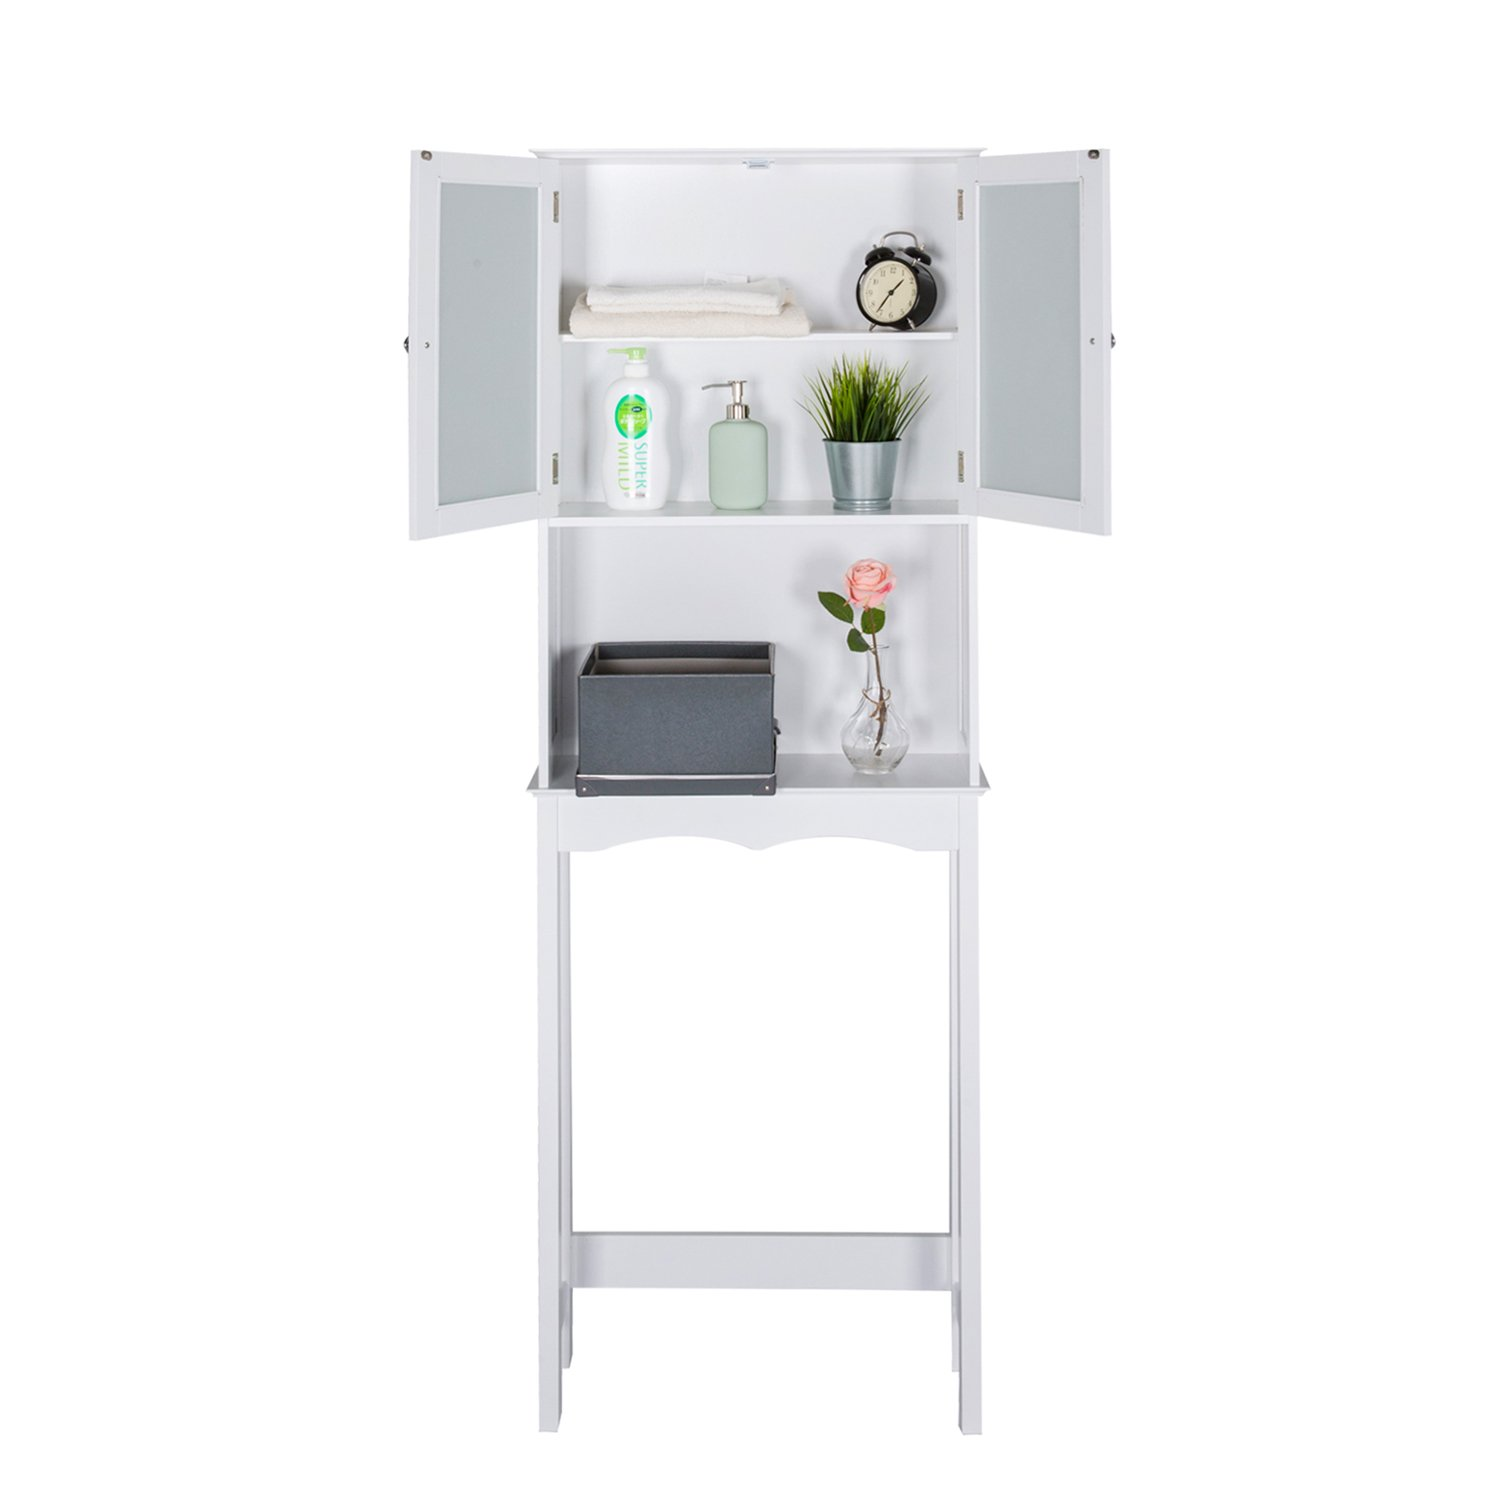 Kinbor 3 Shelf Over The Toilet Bathroom Space Saver, Cottage Collection Bathroom Spacesaver, White